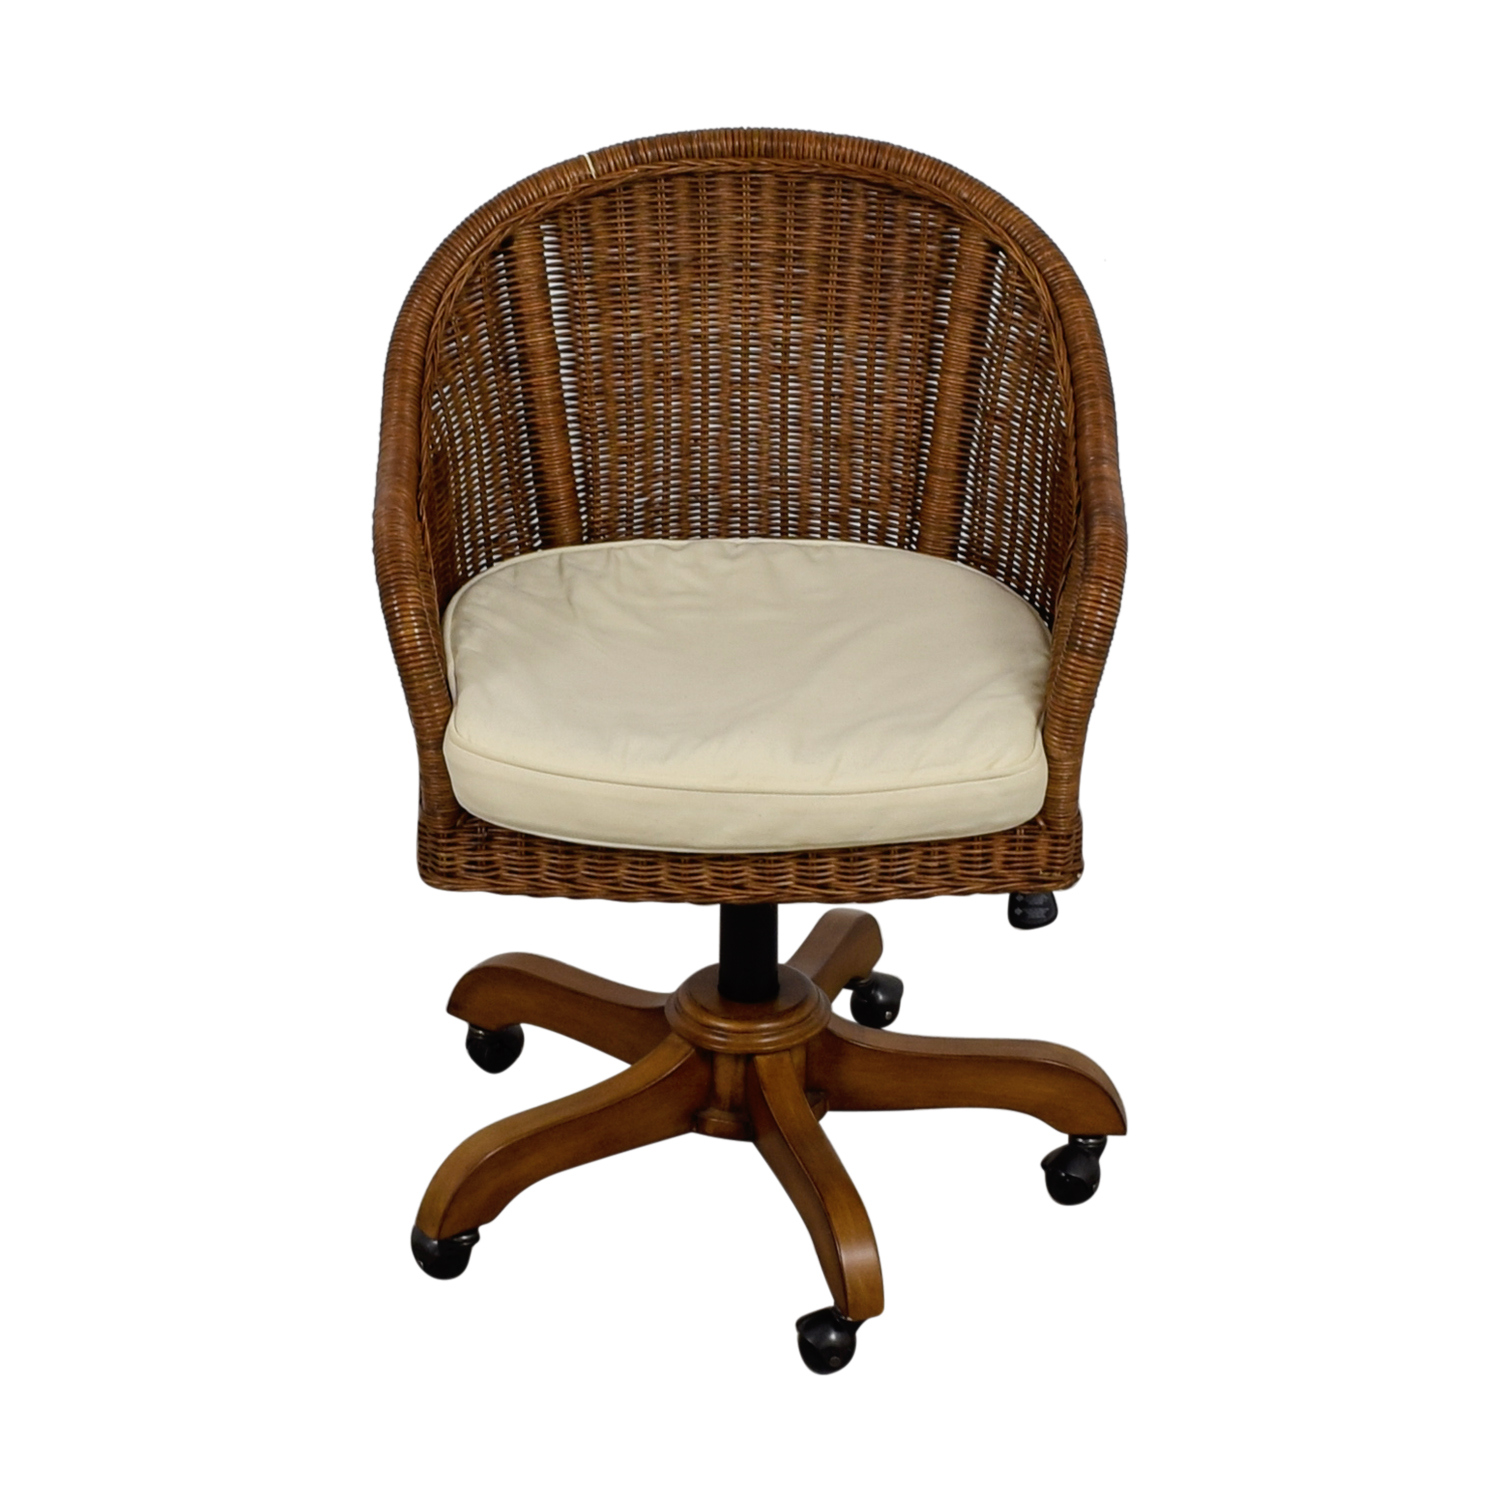 Pottery Barn Wingate Wicker Desk Chair Chairs